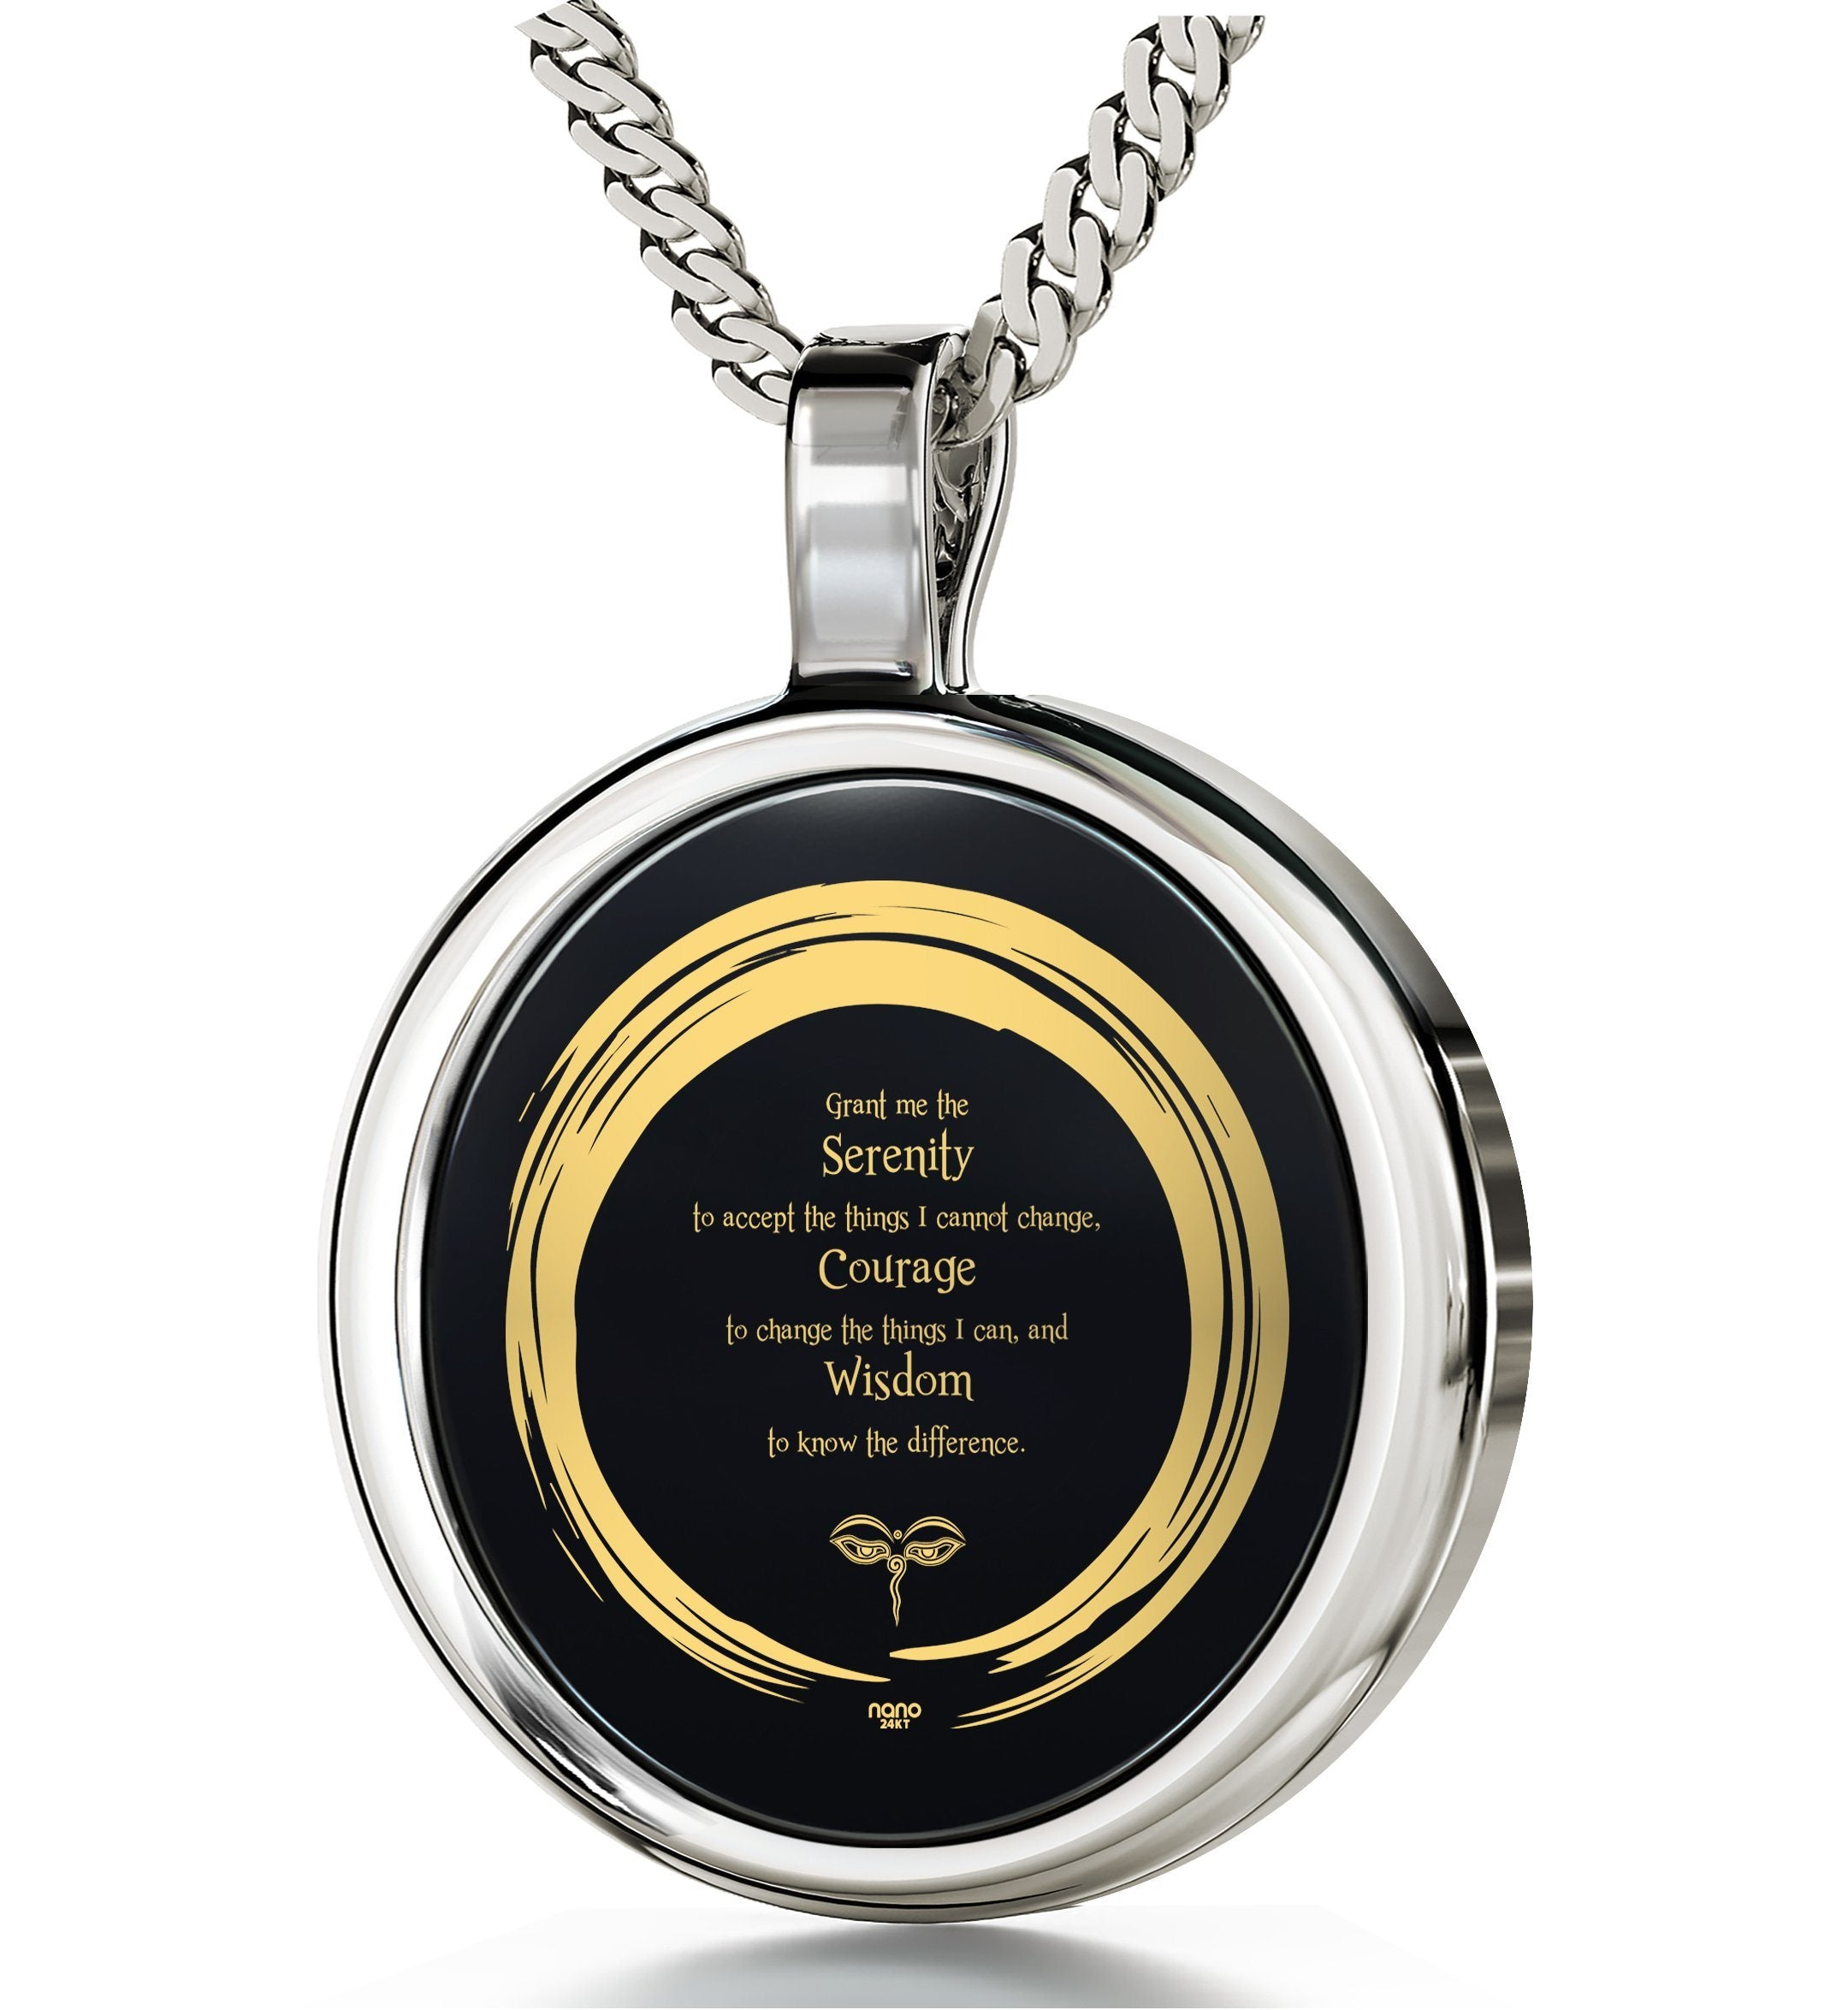 Serenity Prayer Necklace Great Gifts For Her Womens Birthday Presents Nano Jewelry